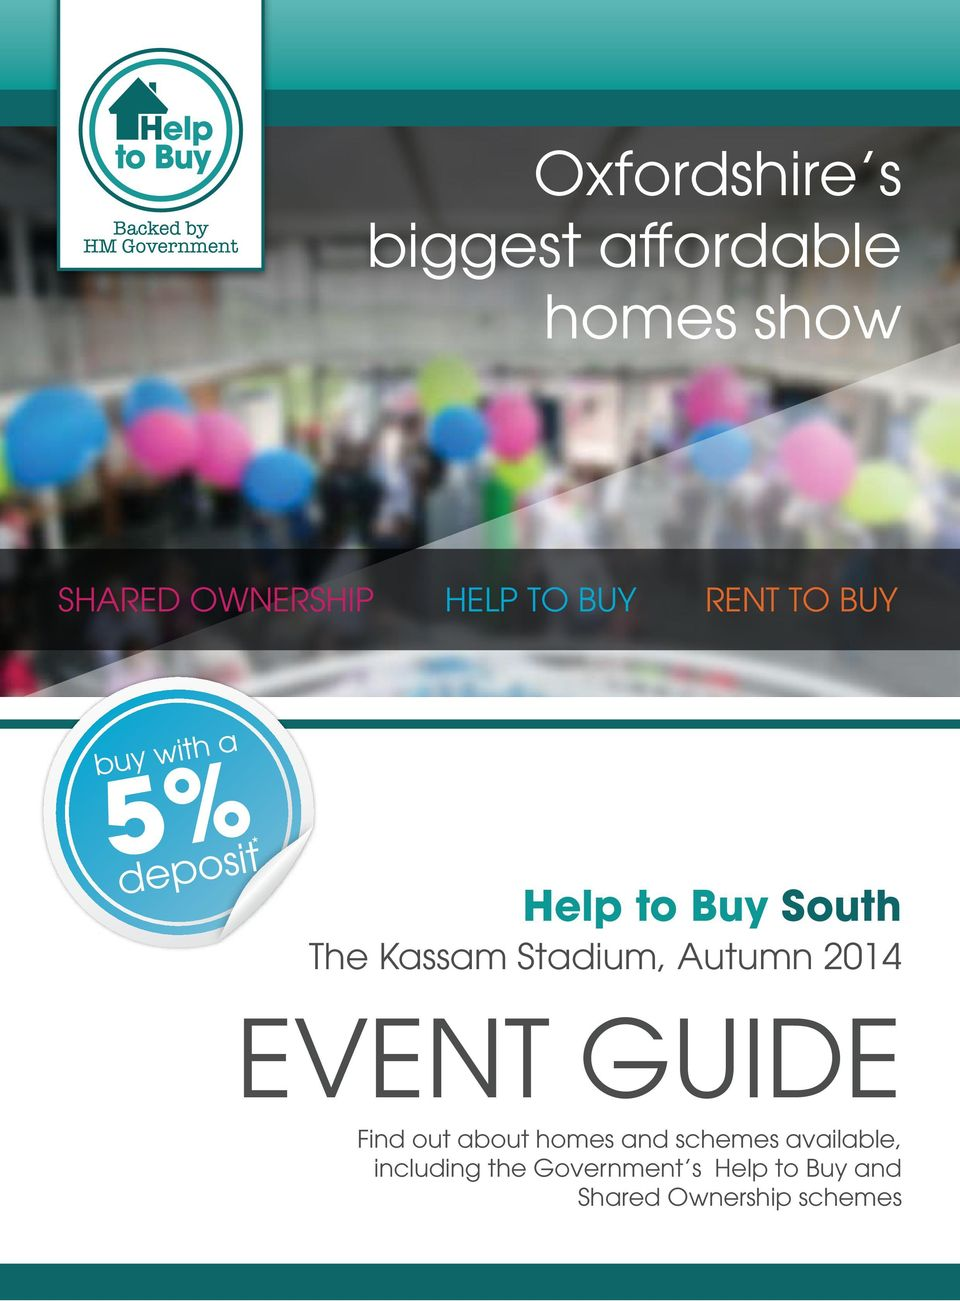 Autumn 2014 EVENT GUIDE Find out about homes and schemes